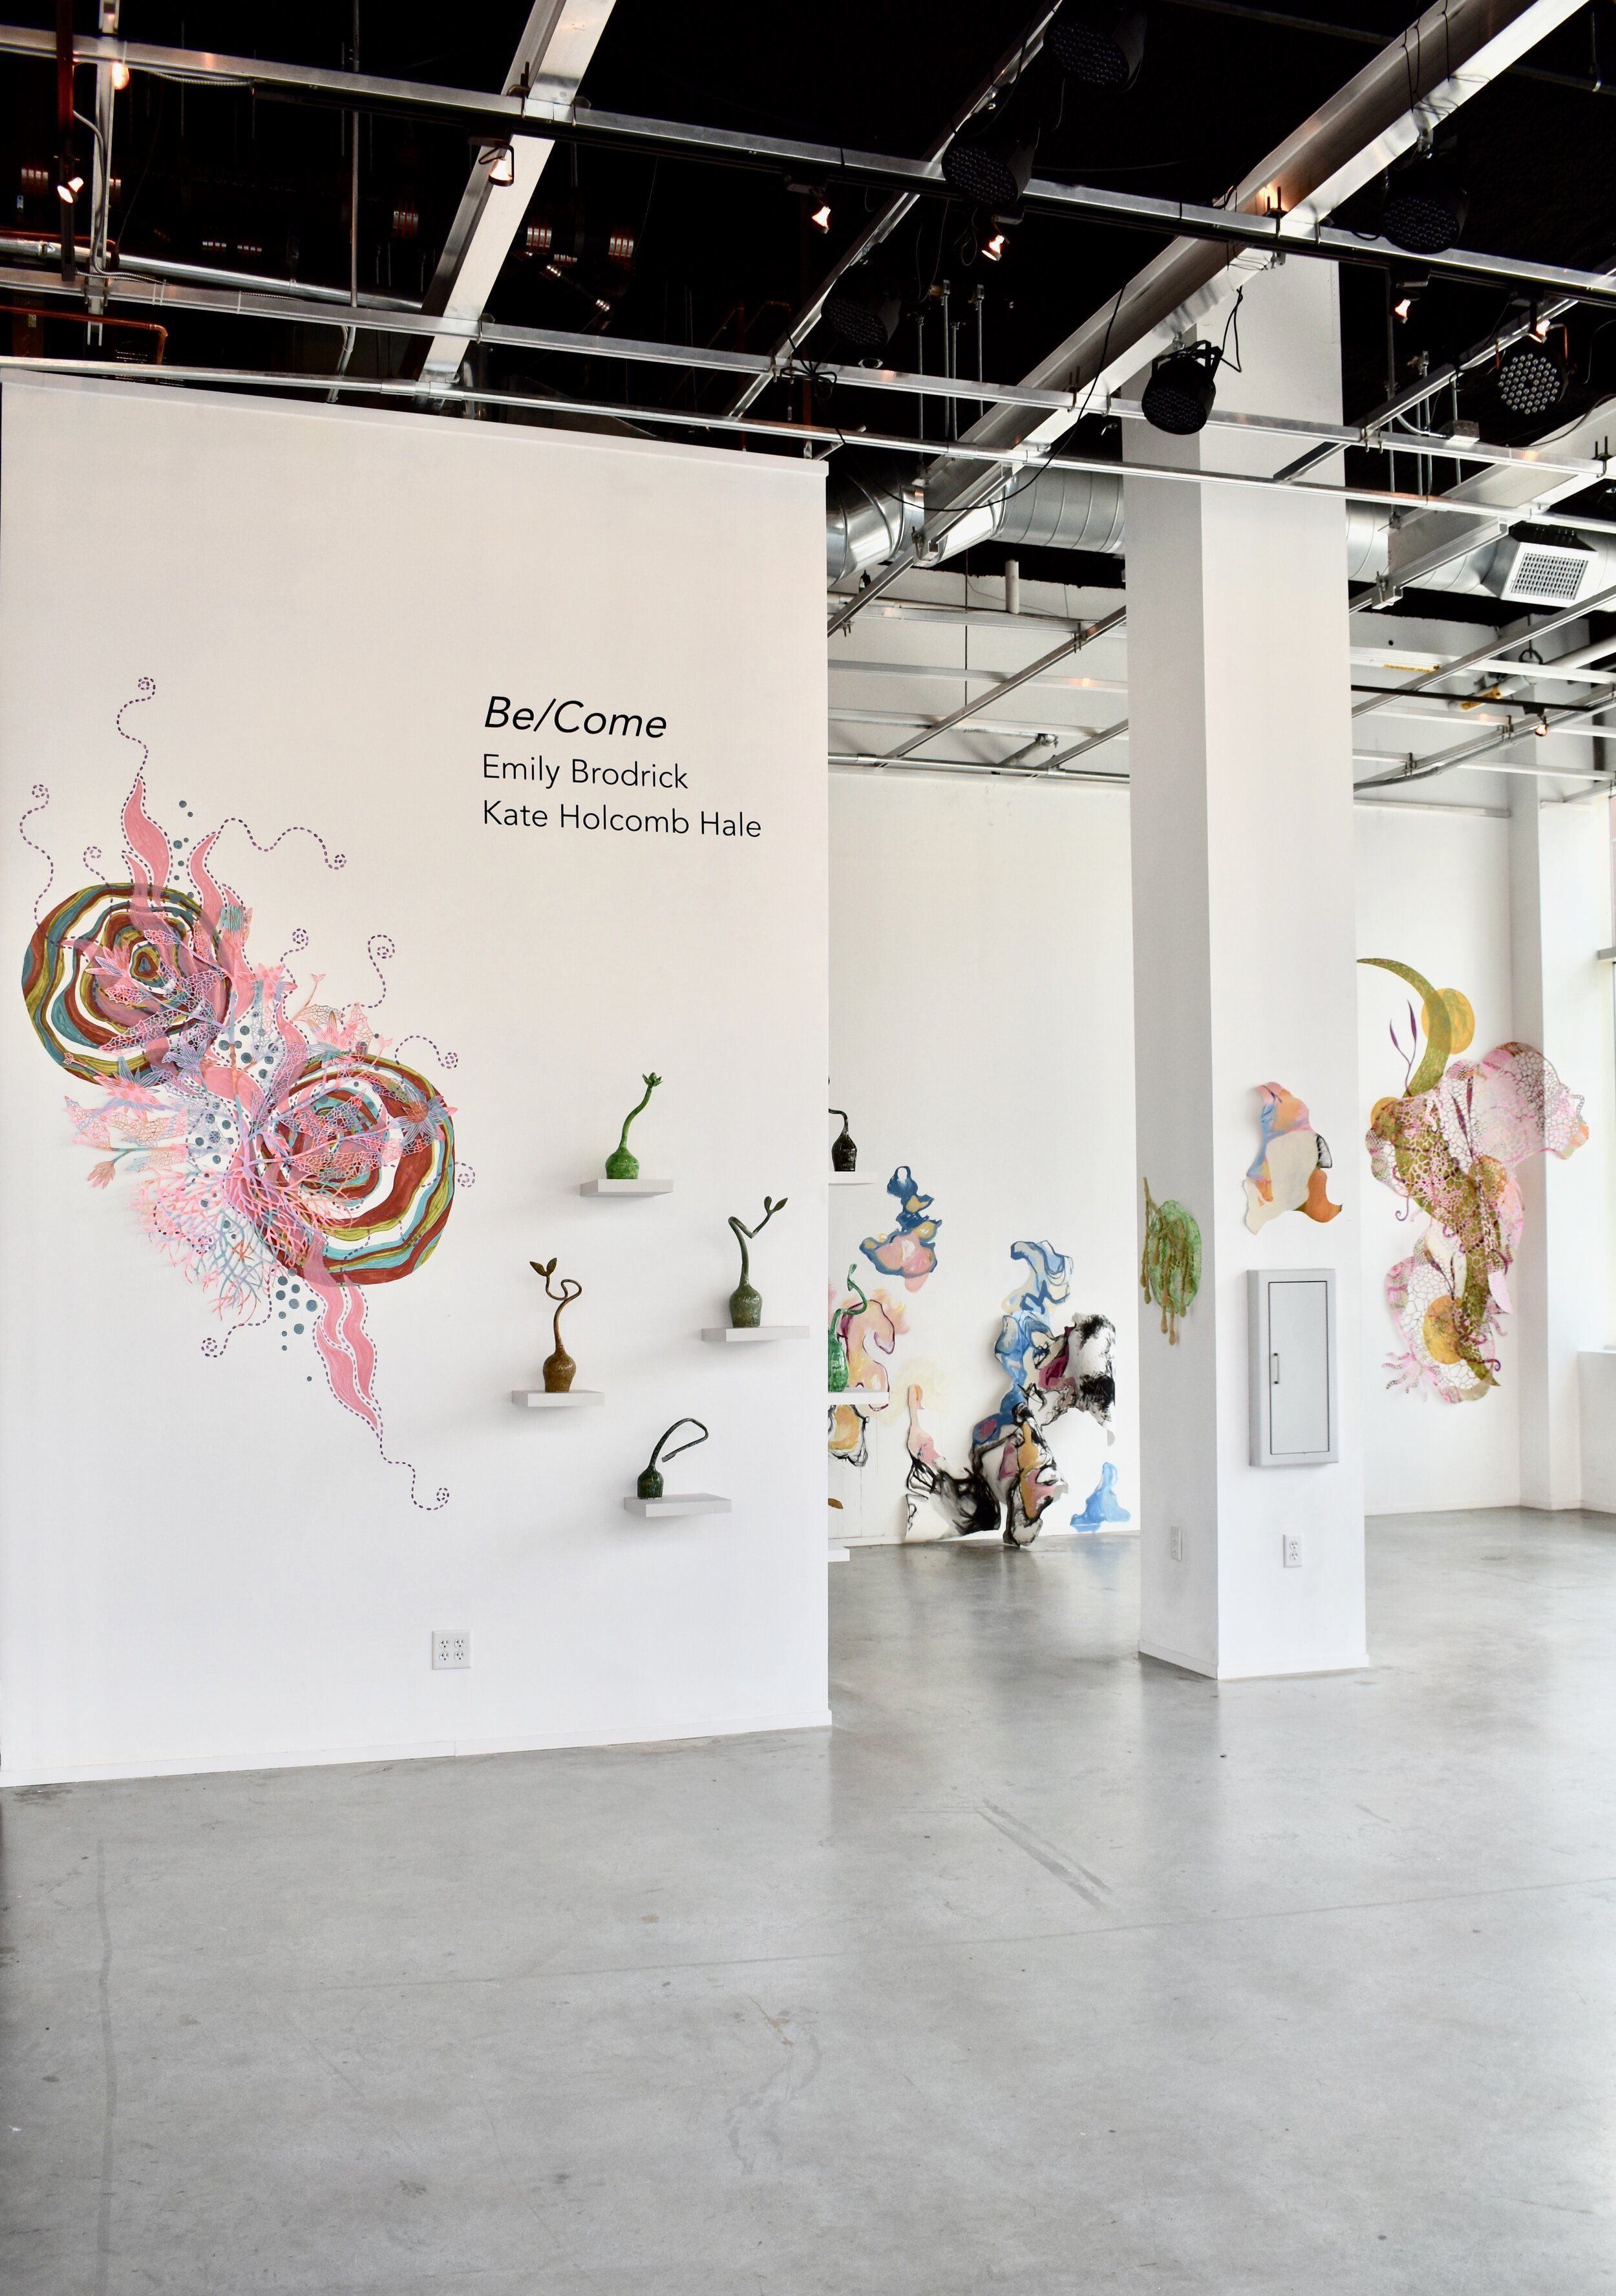 Be/Come, two person show with Kate Holcomb Hale, FPAC Assemblage Gallery, May-June 2019.